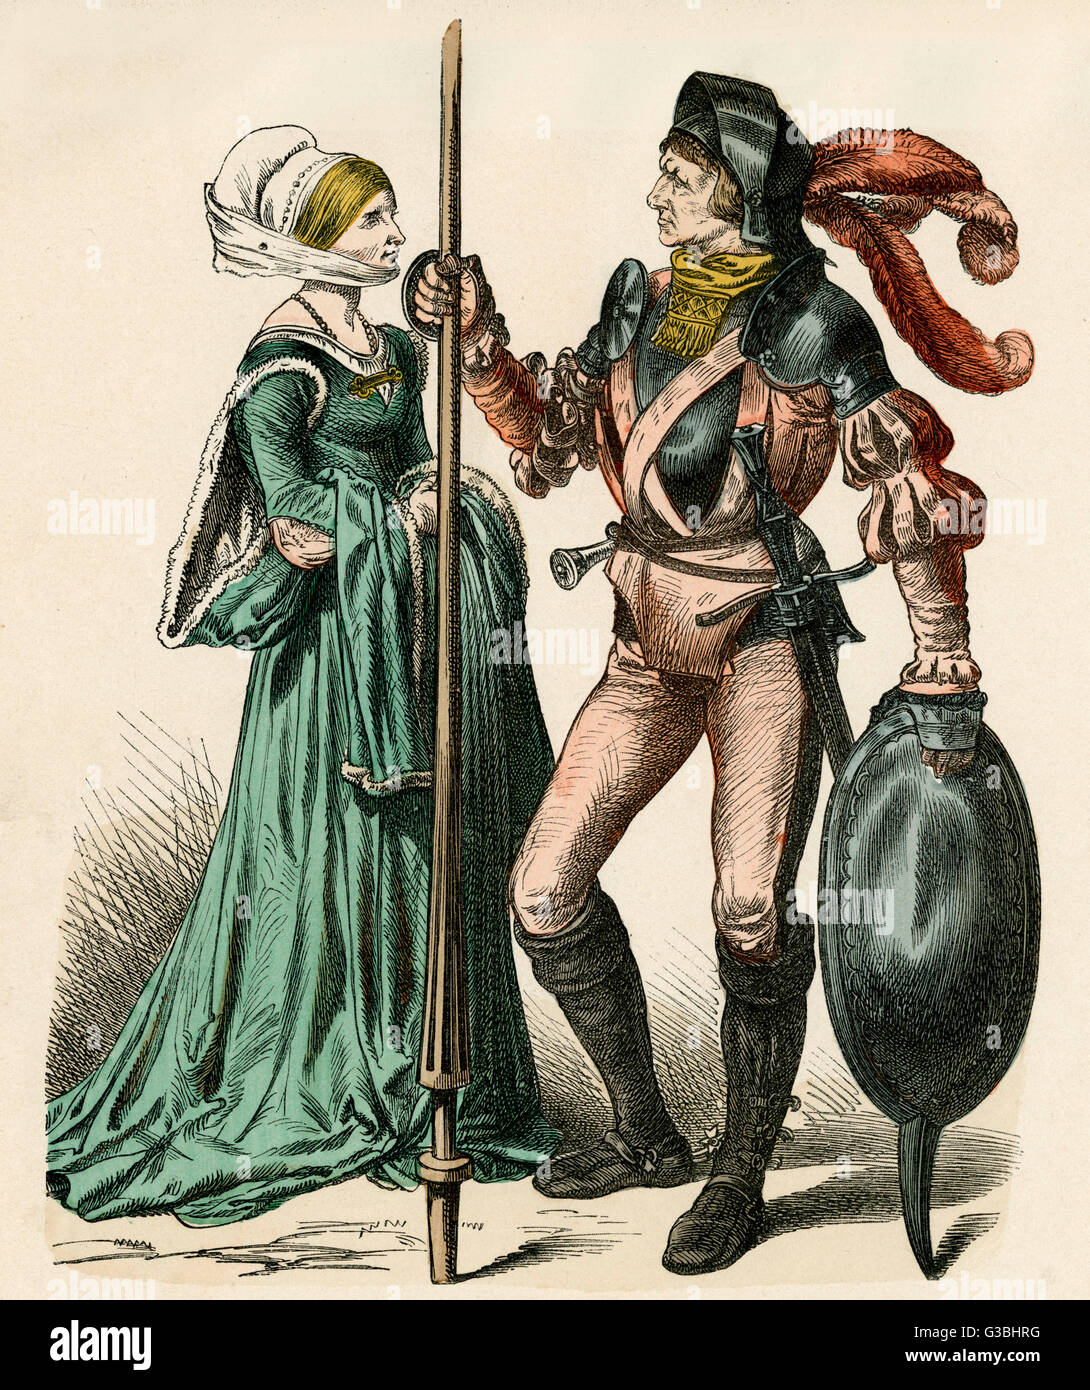 A German couple of the early  16th century. Man: armour,  shield, buskins (boots) &  hose. Woman: the sleeves - Stock Image